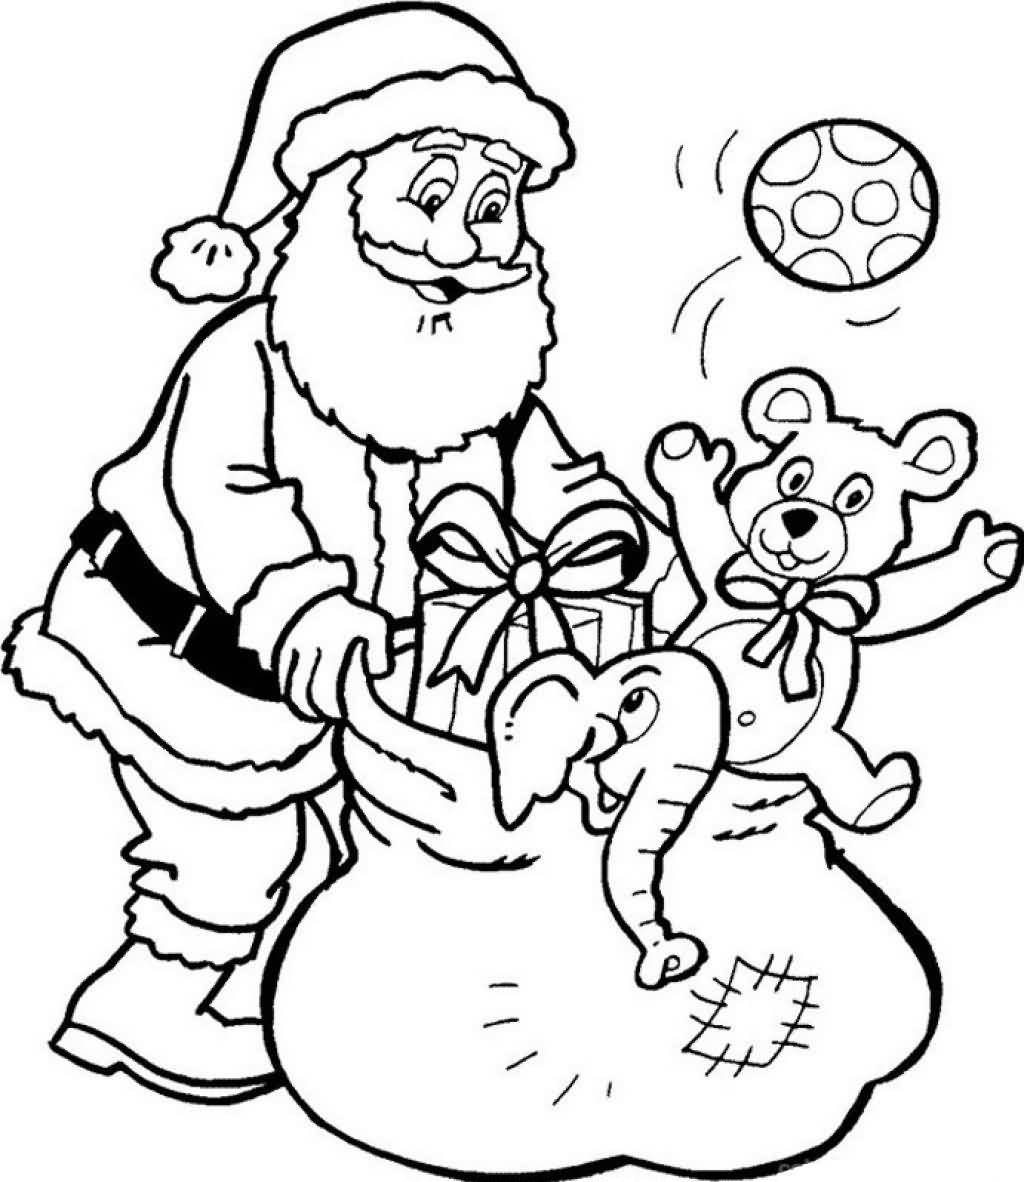 Santa Claus Coloring Pages Image Picture Photo Wallpaper 13